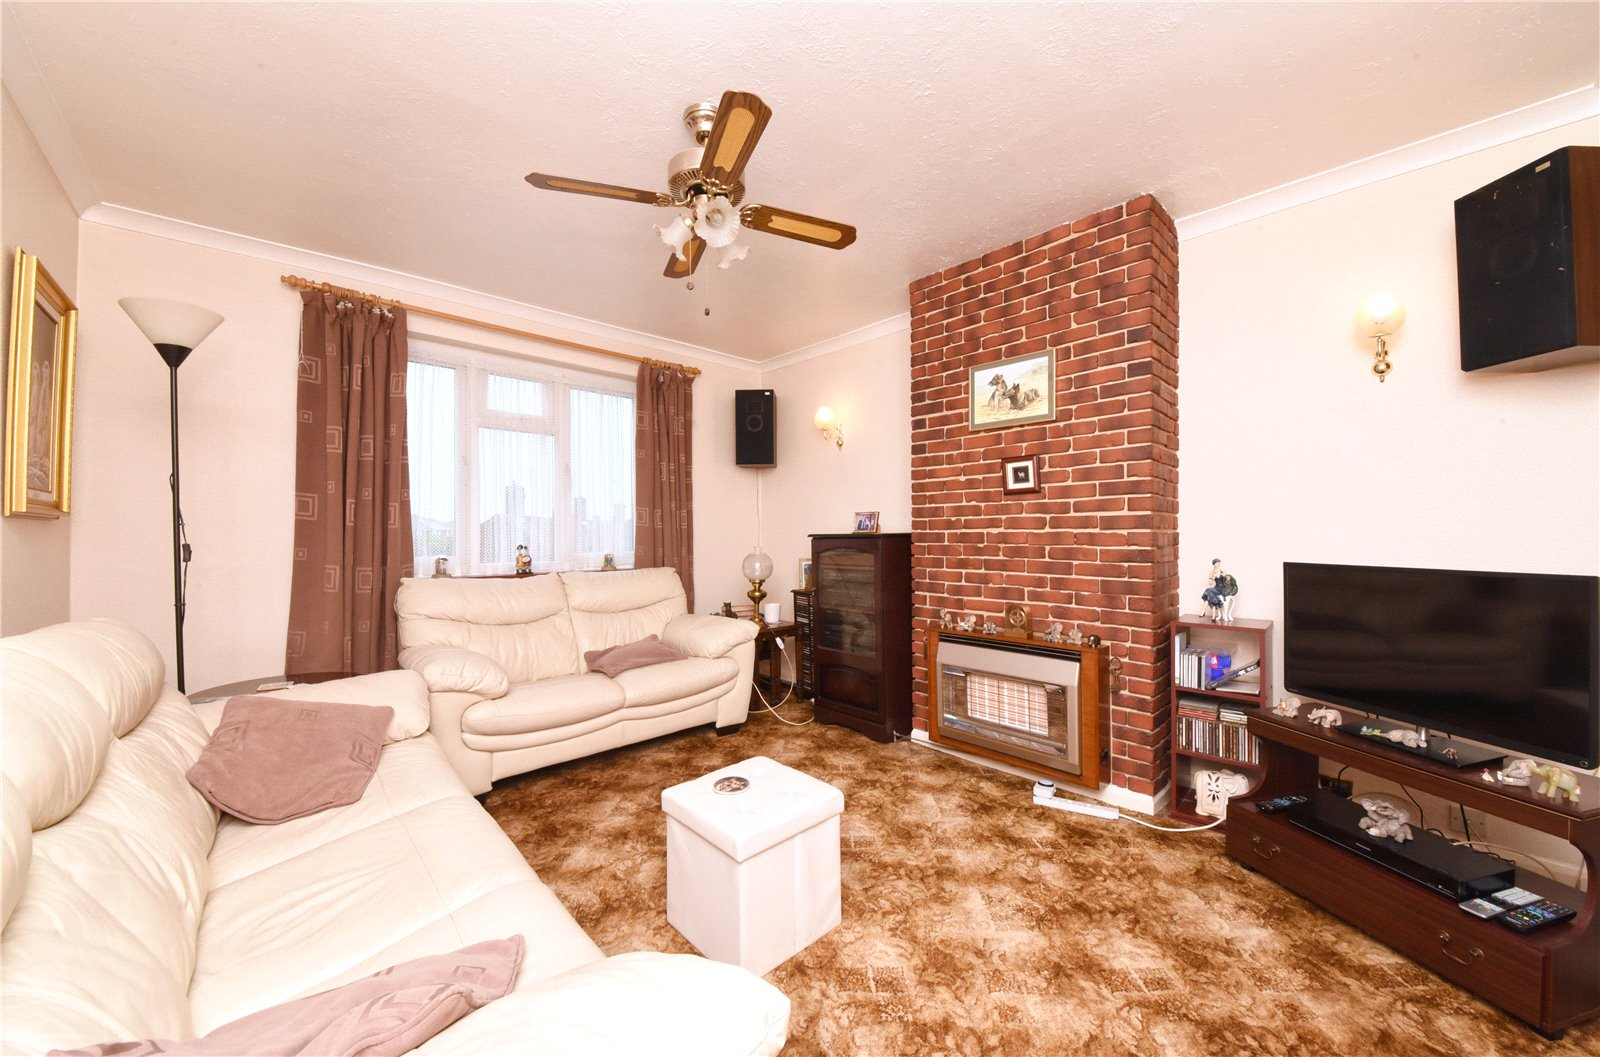 3 bed house for sale in Whetstone, N20 0DG  - Property Image 2